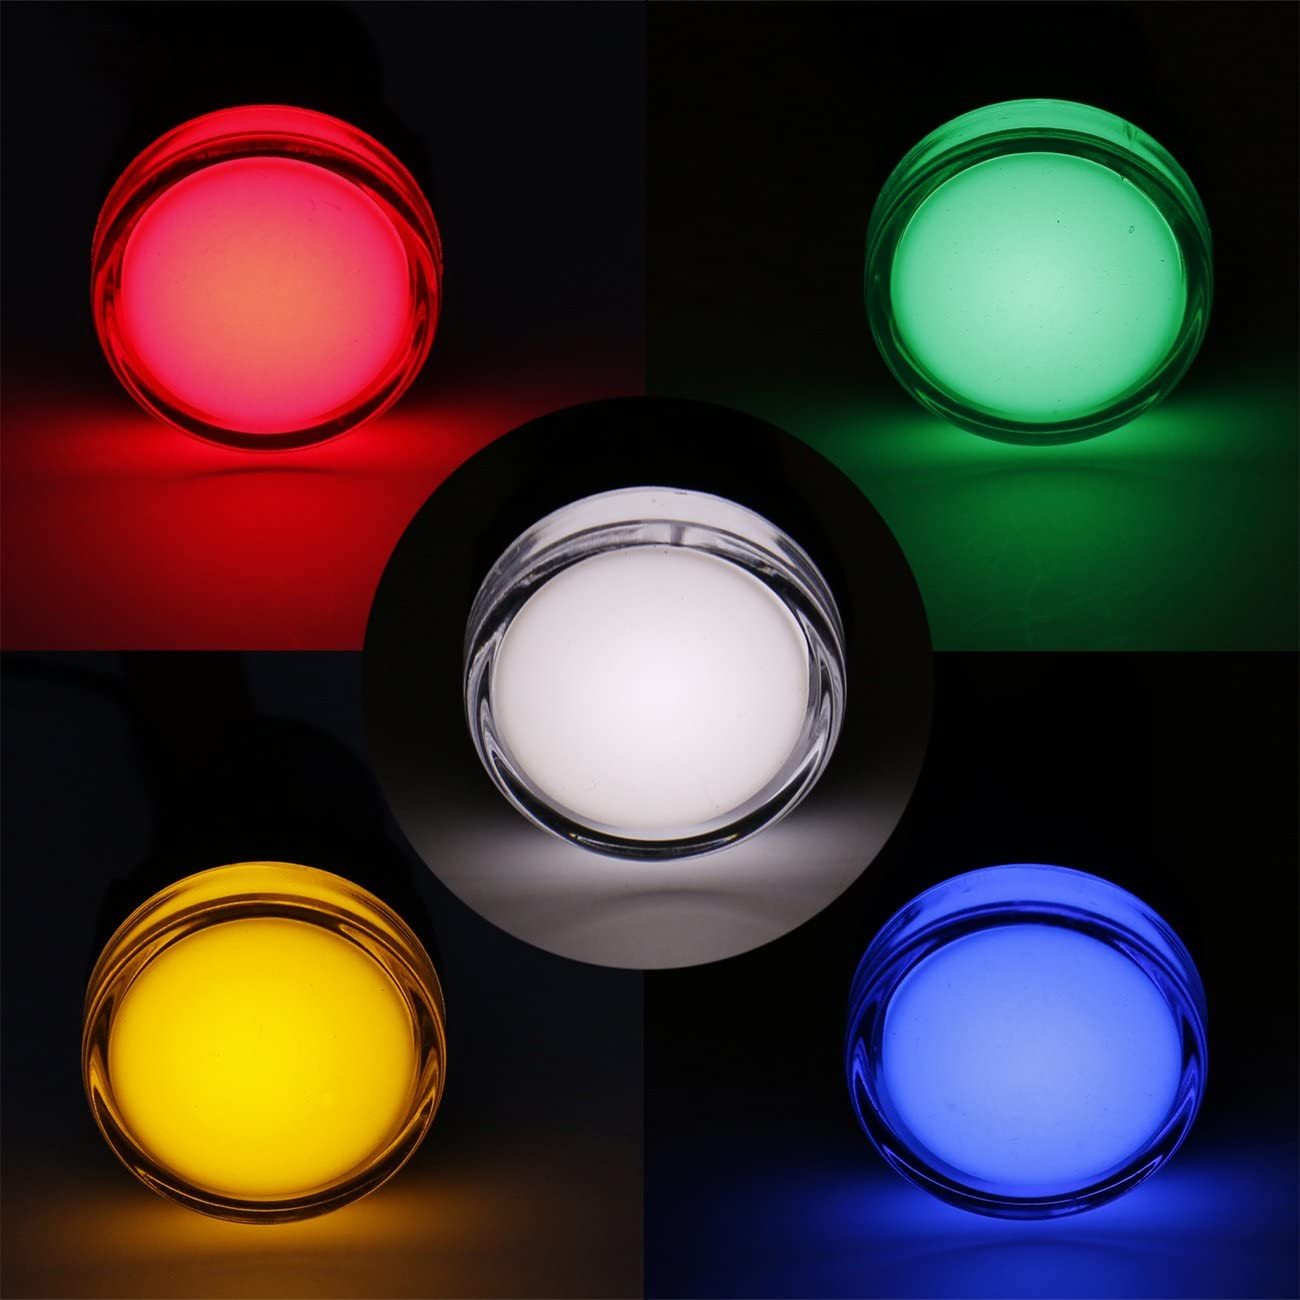 Heschen AD16-22D//S Lot de 5 voyants LED 220 V AC 20 mA Rouge